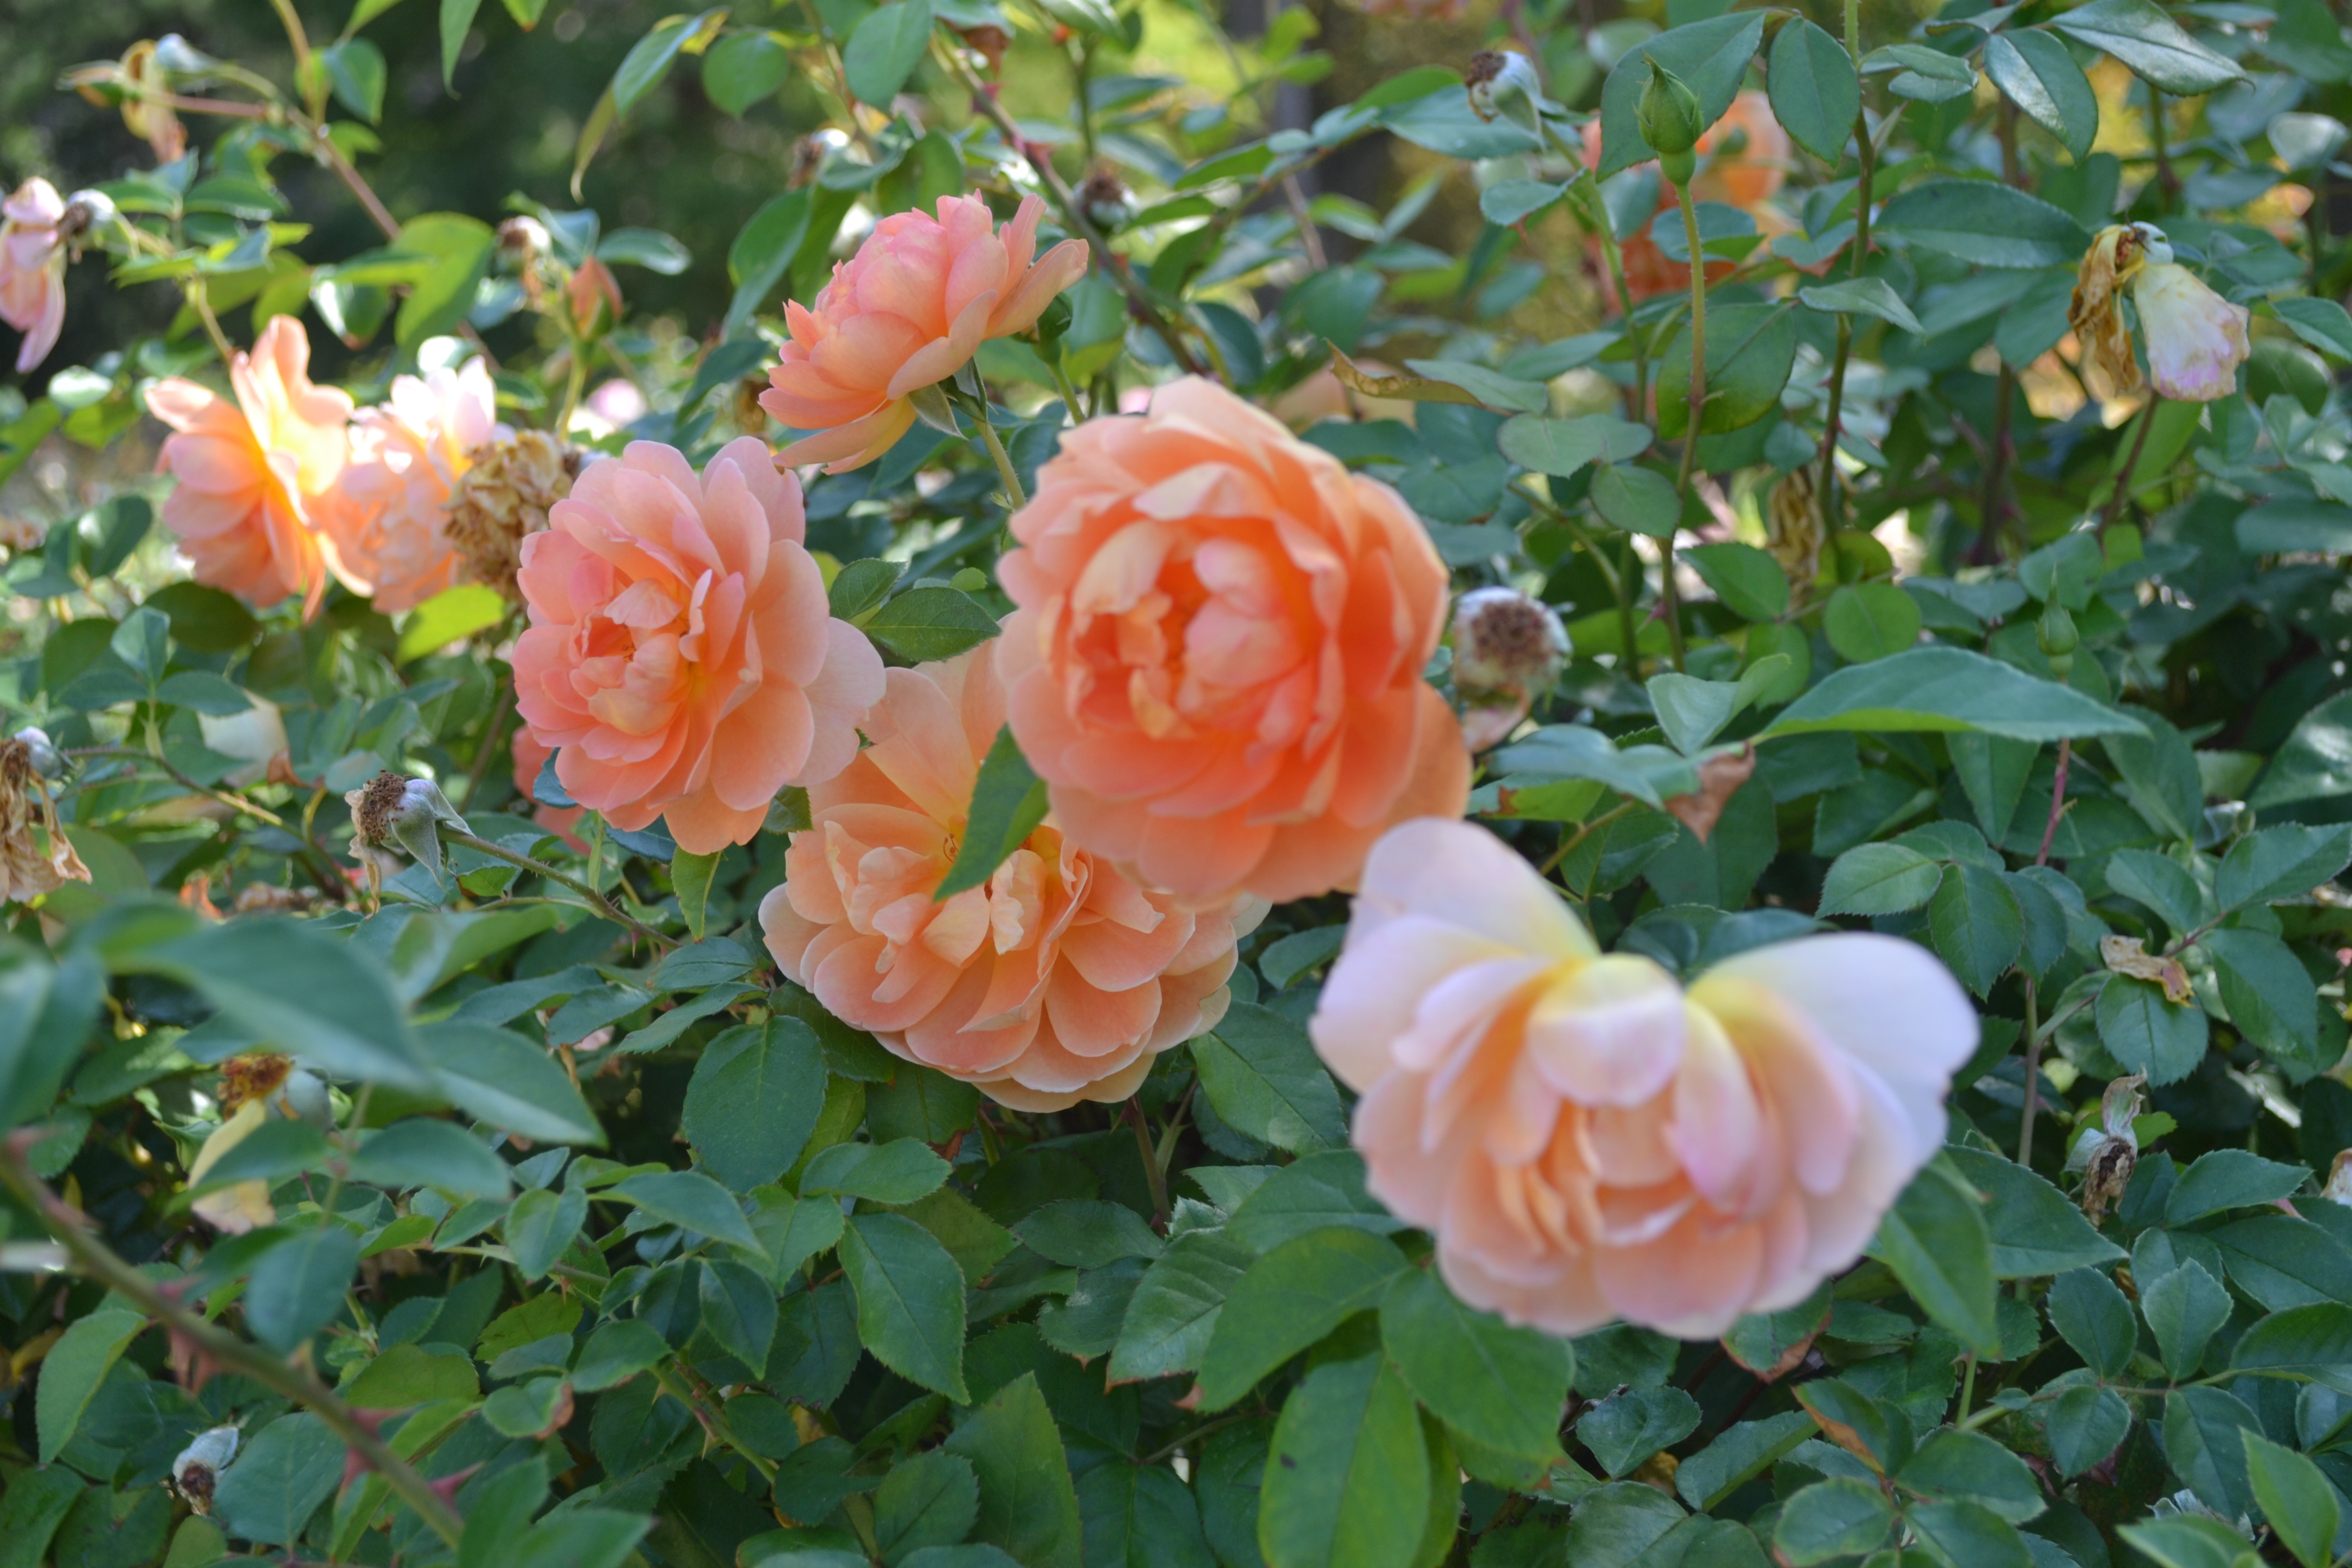 Roses In Garden: Tyler Rose Garden And Rose Museum